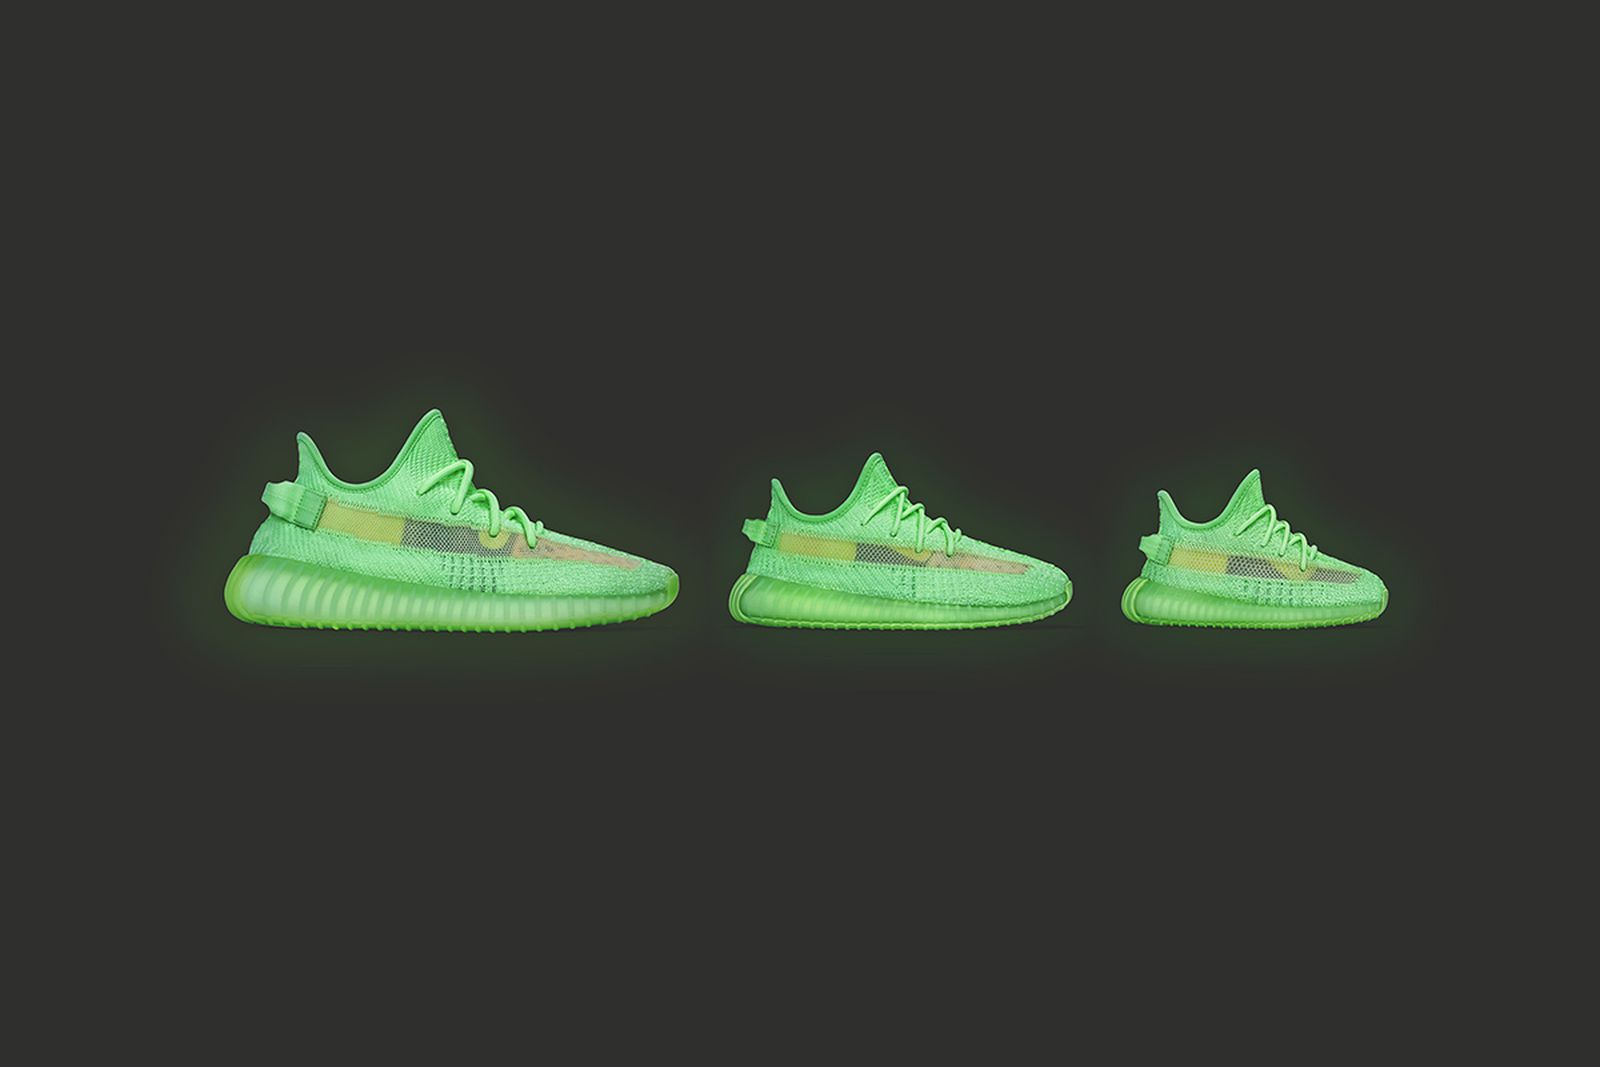 adidas yeezy boost 350 v2 glow dark release date price product adidas Originals YEEZY Boost 350 V2 kanye west